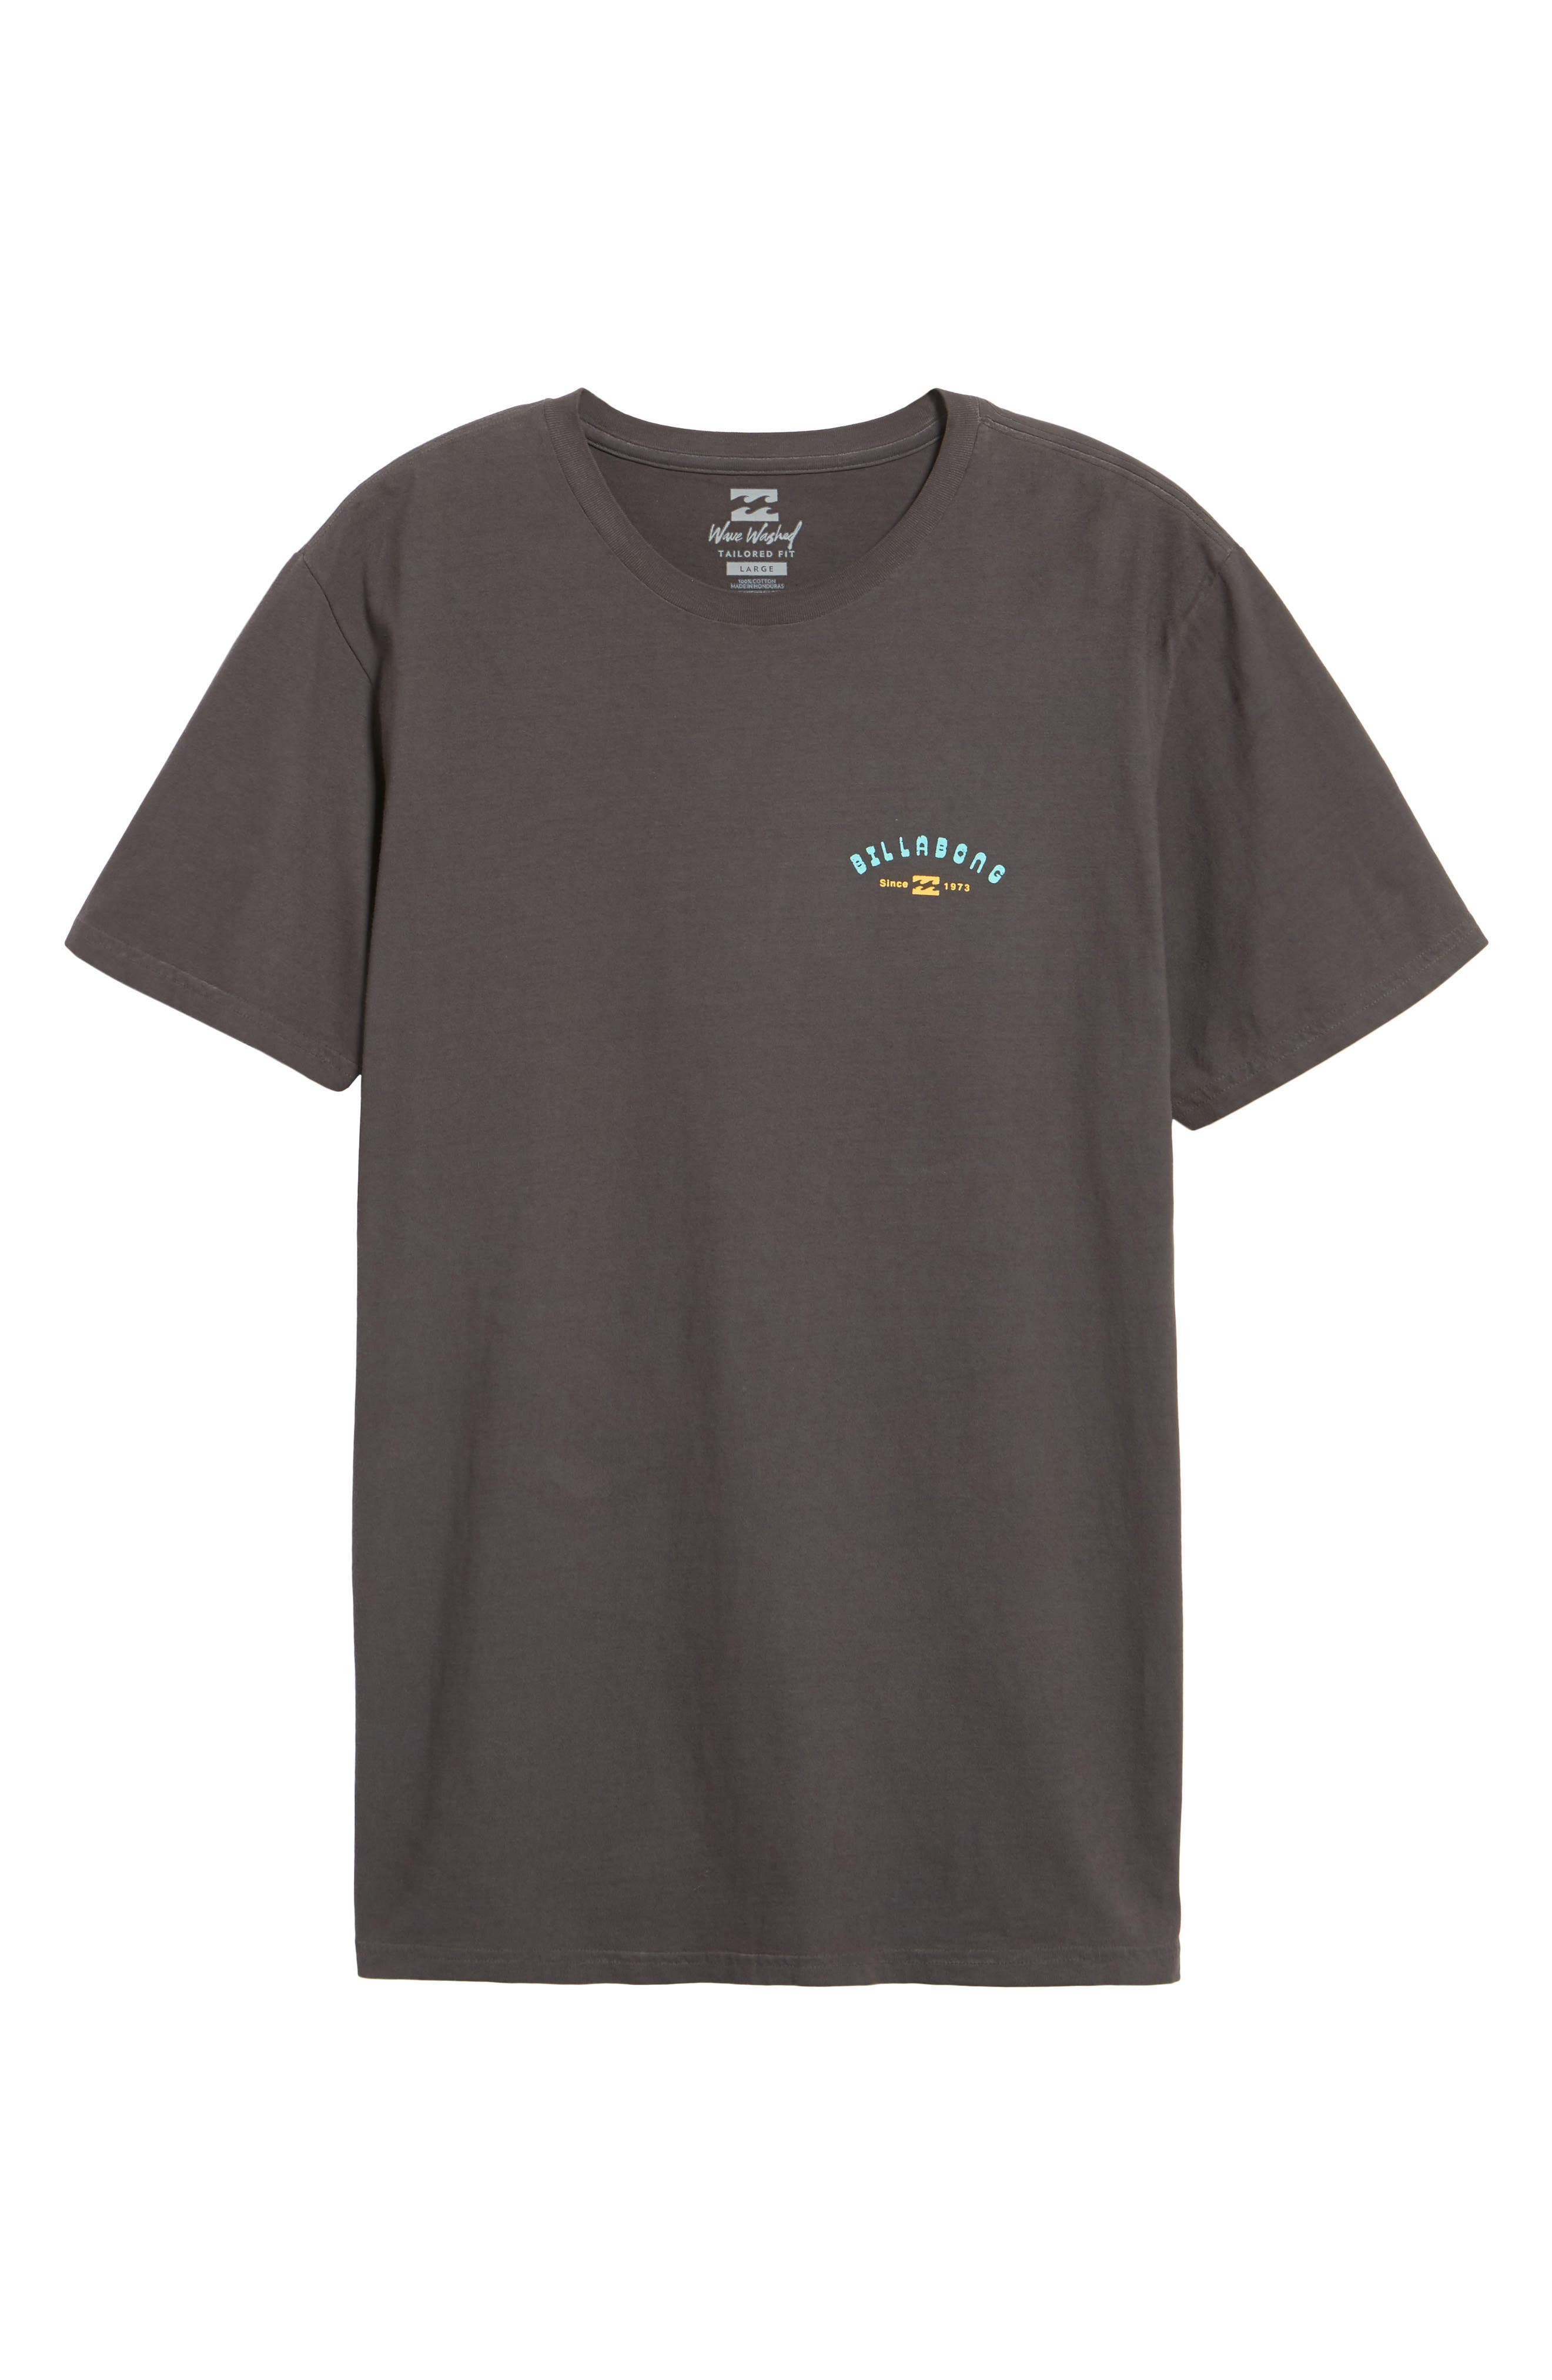 Single Fin Graphic T-Shirt,                             Alternate thumbnail 6, color,                             010